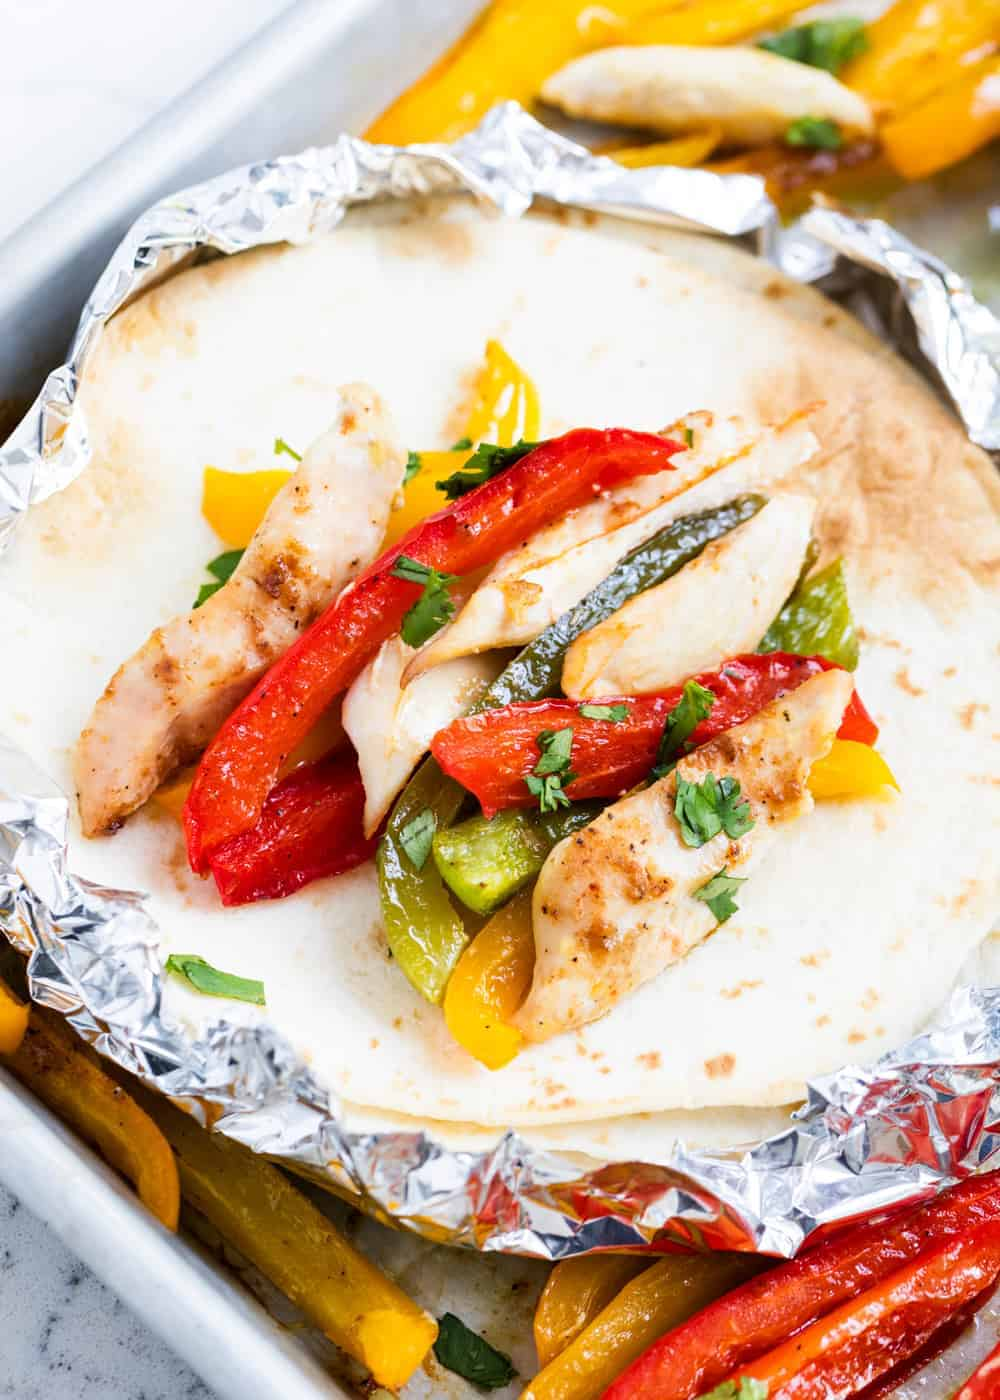 chicken fajitas on a flour tortilla